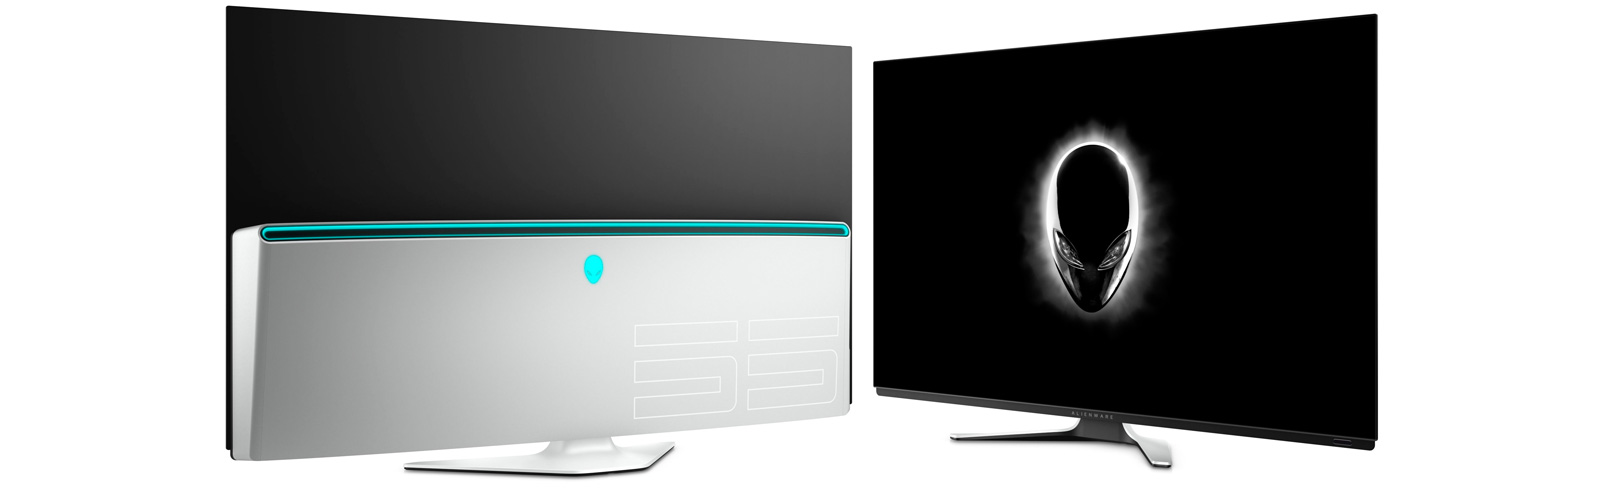 The new Dell Alienware monitors go on pre-sale - AW5520QF, AW2720HF, AW3420DW